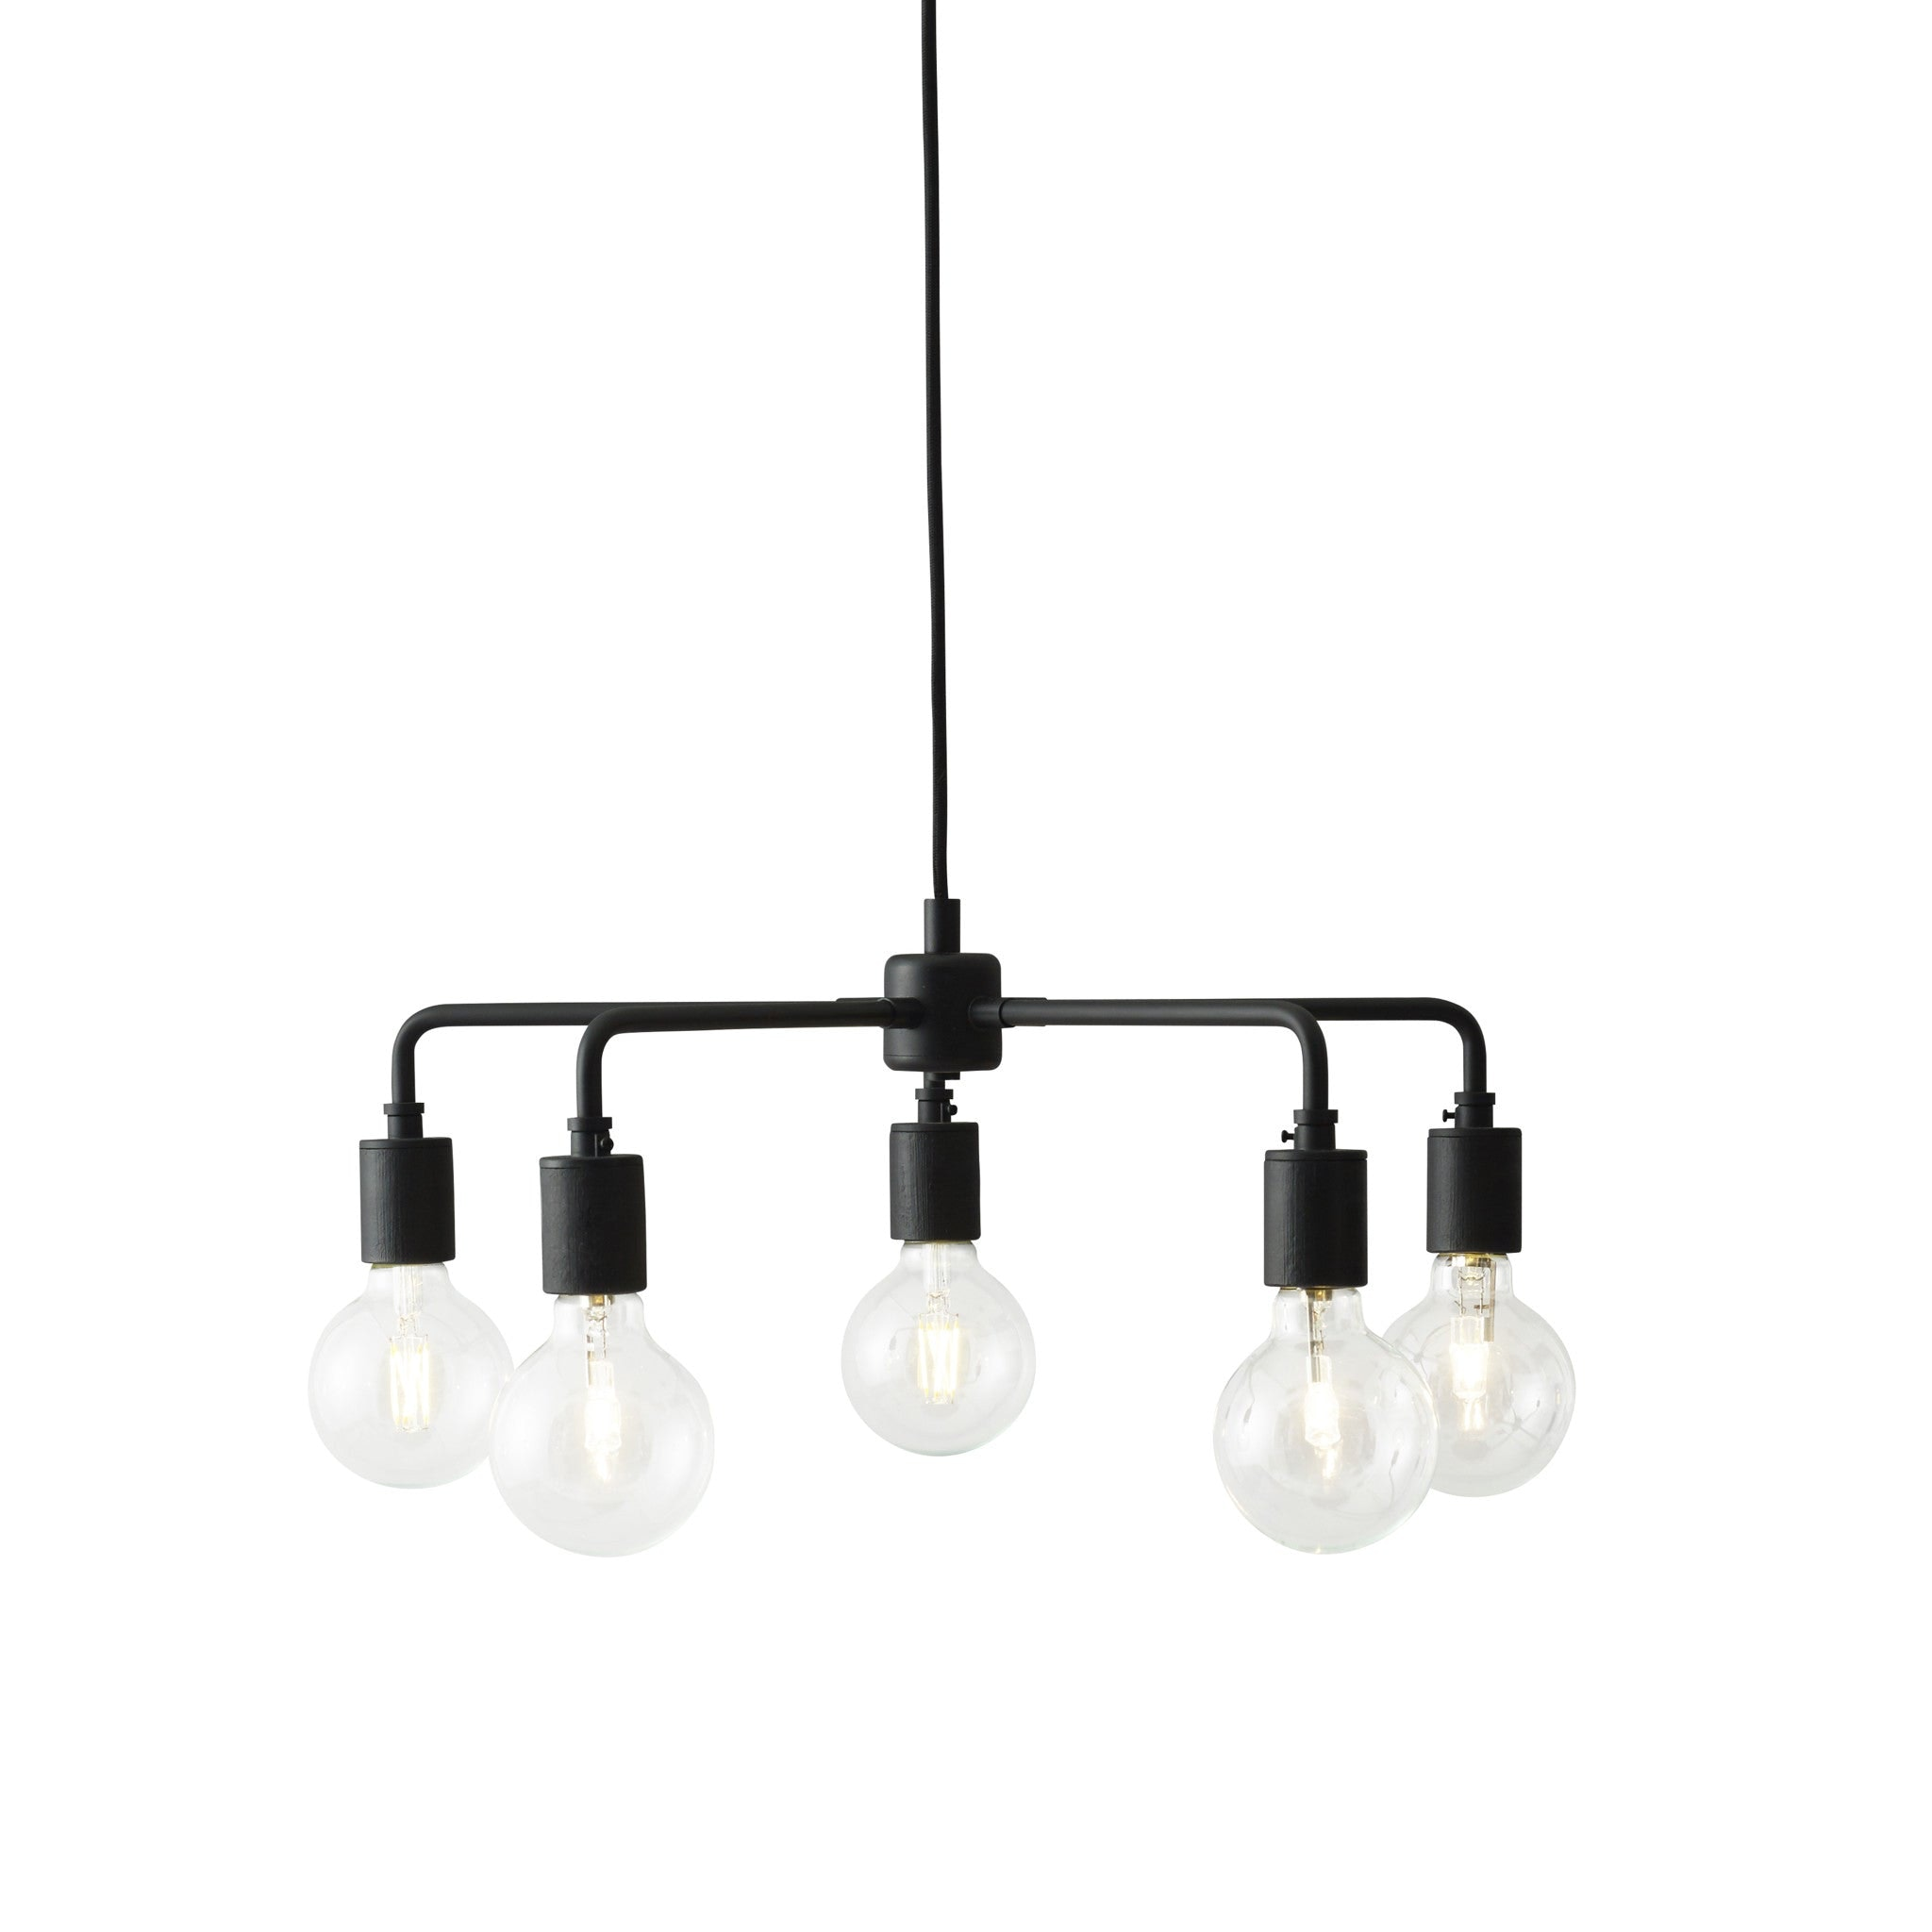 Tribeca Leonard Chandelier by Menu